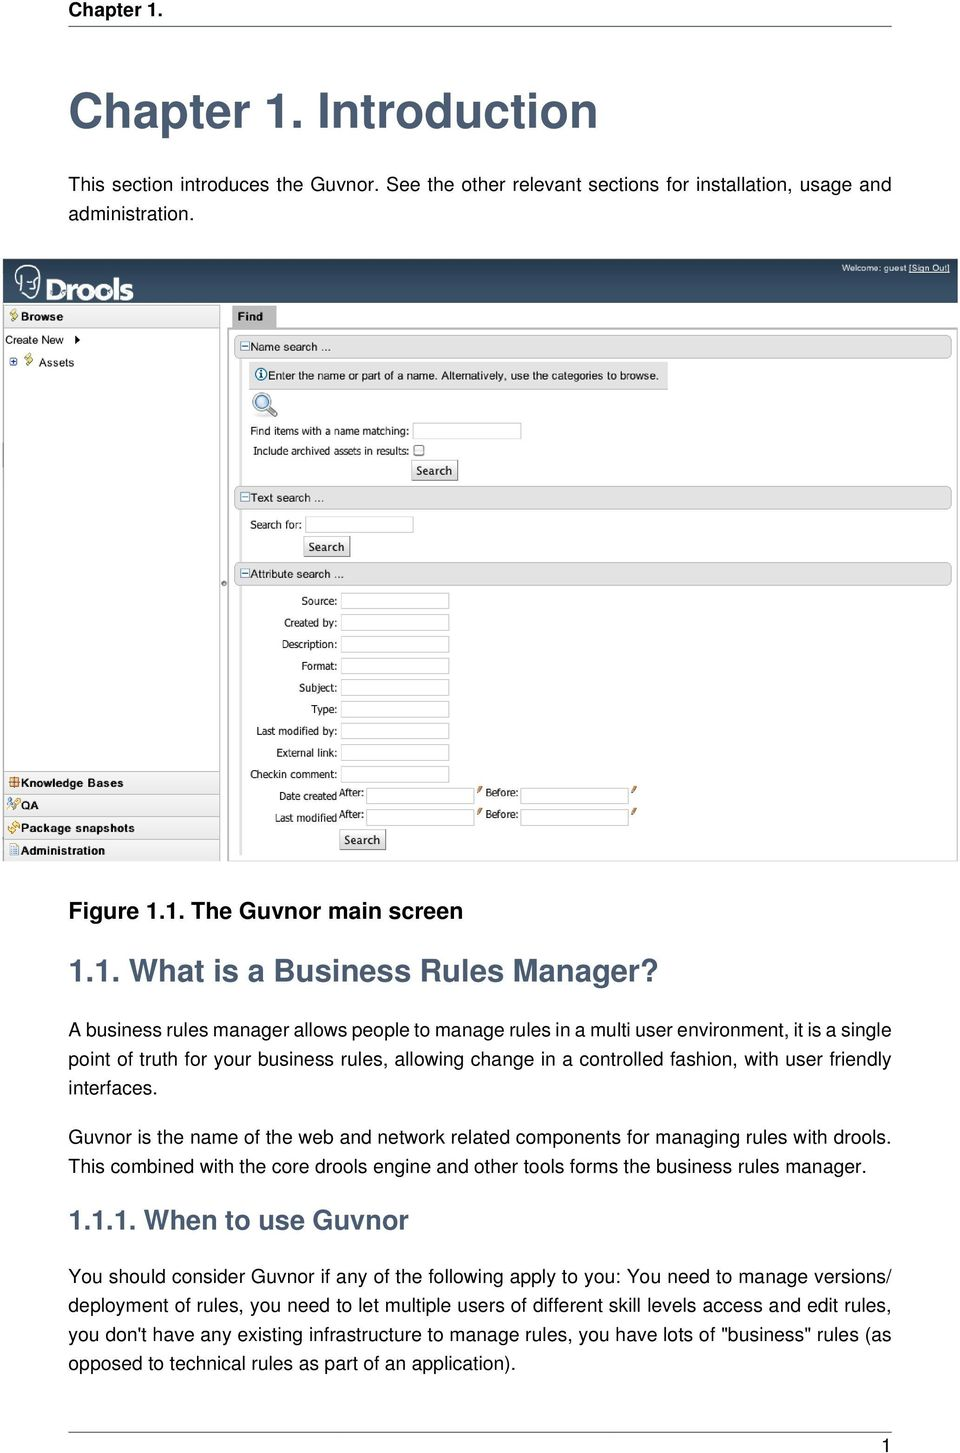 interfaces. Guvnor is the name of the web and network related components for managing rules with drools. This combined with the core drools engine and other tools forms the business rules manager. 1.